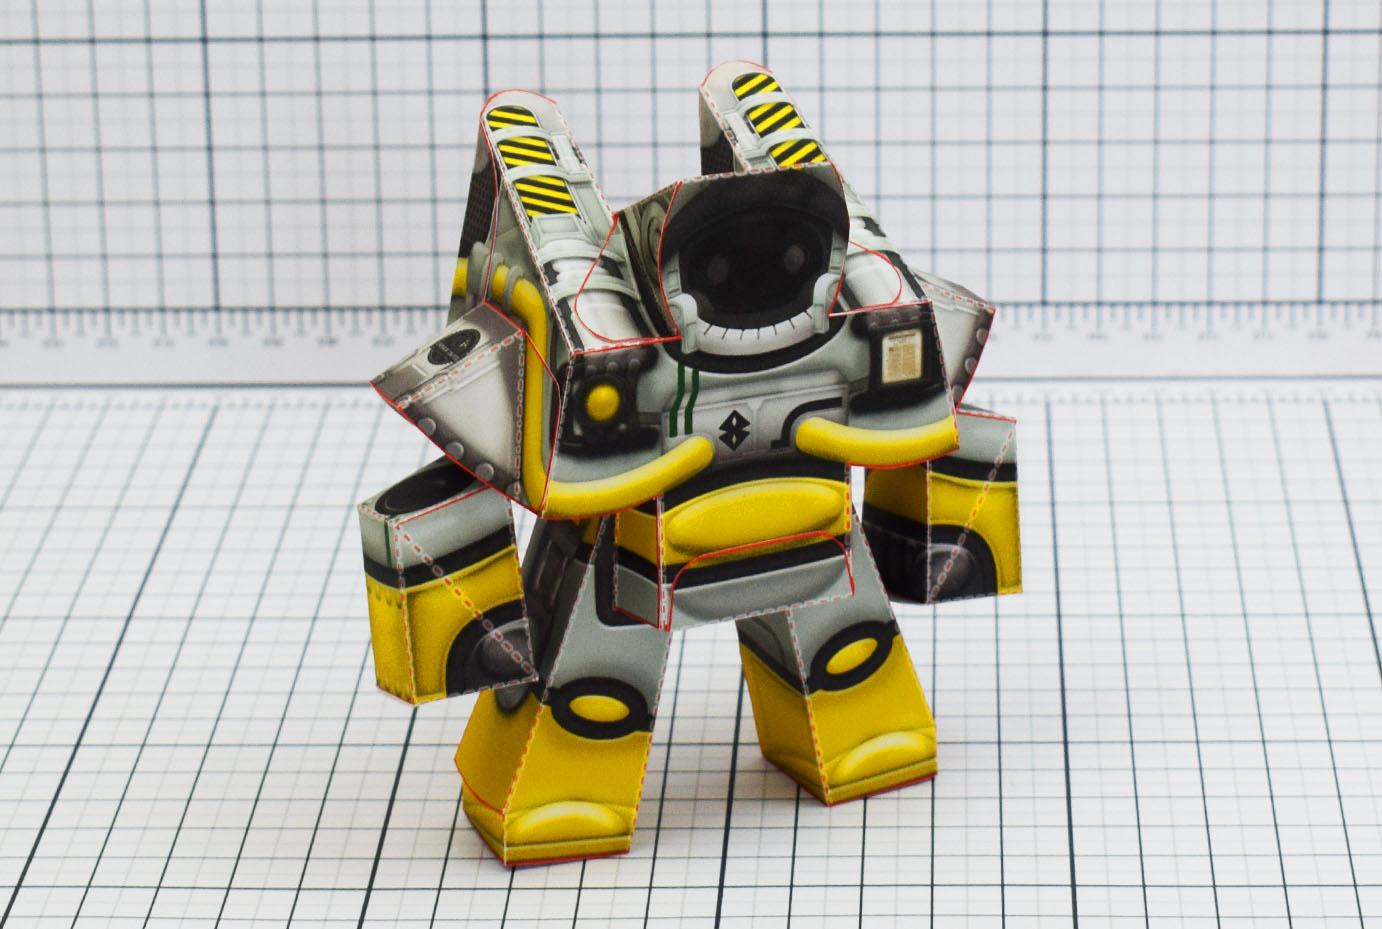 PTI Xplore Space Robot UPC Paper Toy Image Main